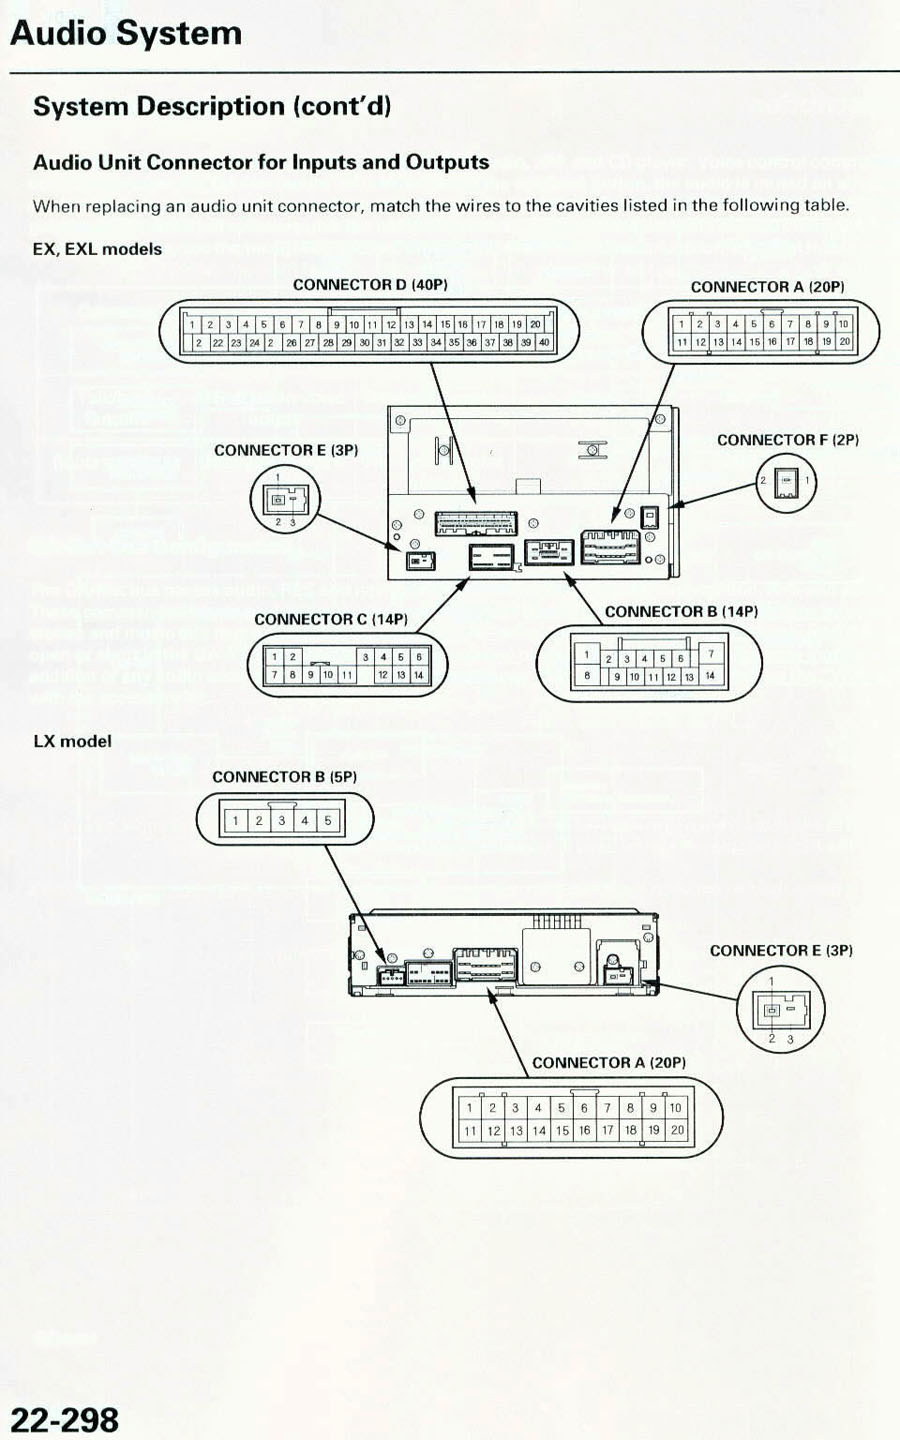 32969d1200063279 re factory subwoofer aftermarket hu audio_connector 2006 re factory subwoofer and aftermarket hu honda pilot honda 2008 Honda Pilot Engine Diagram at aneh.co